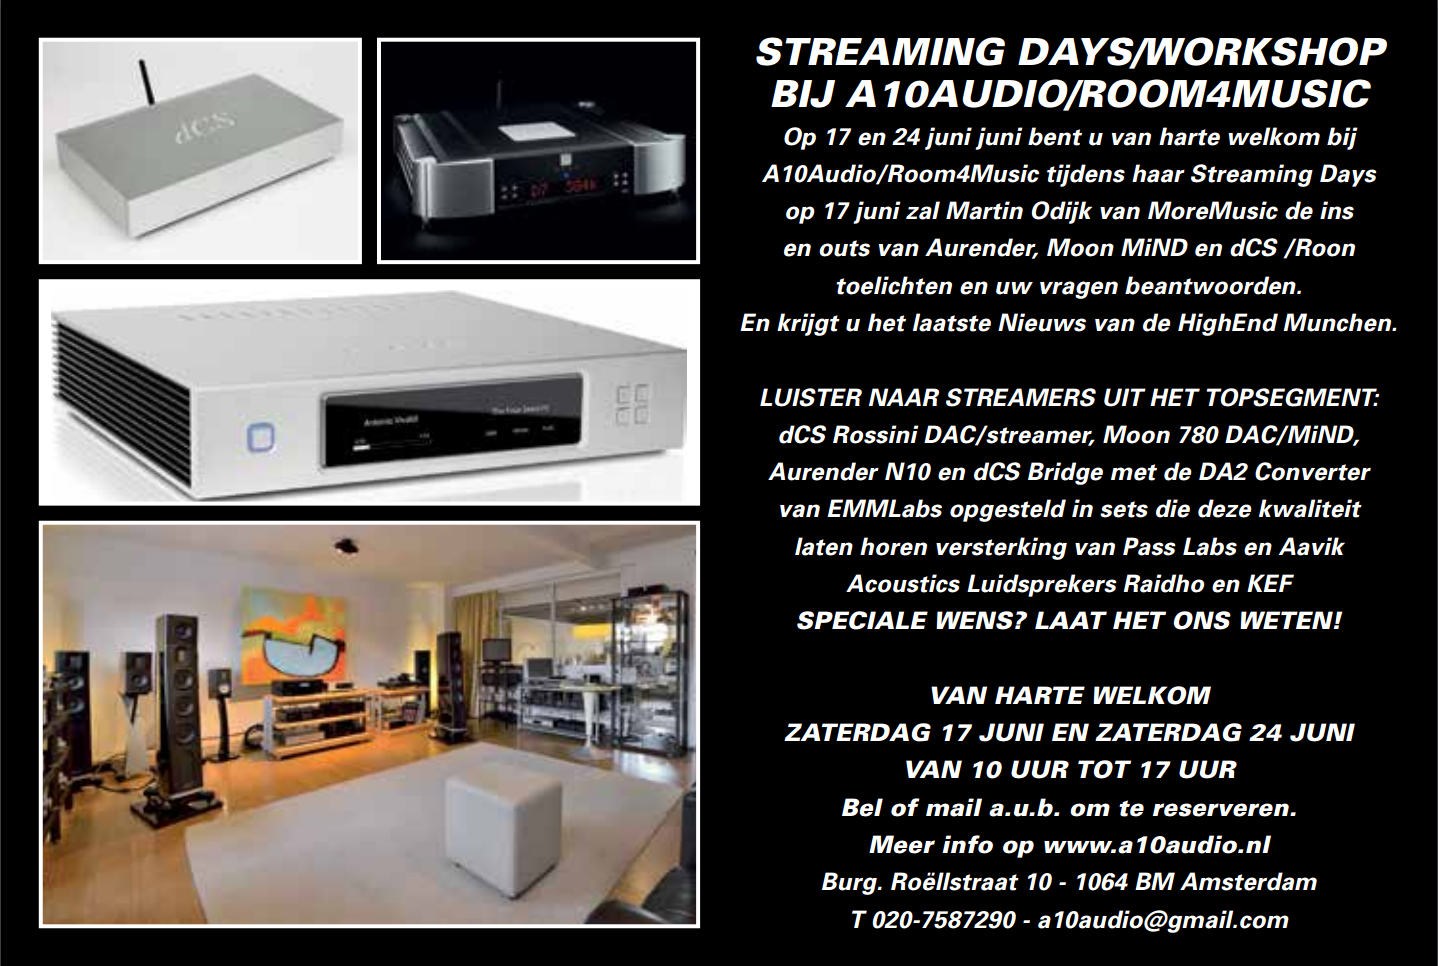 17 en 24 juni Streaming Days/Workshop bij A10audio/Room4Music